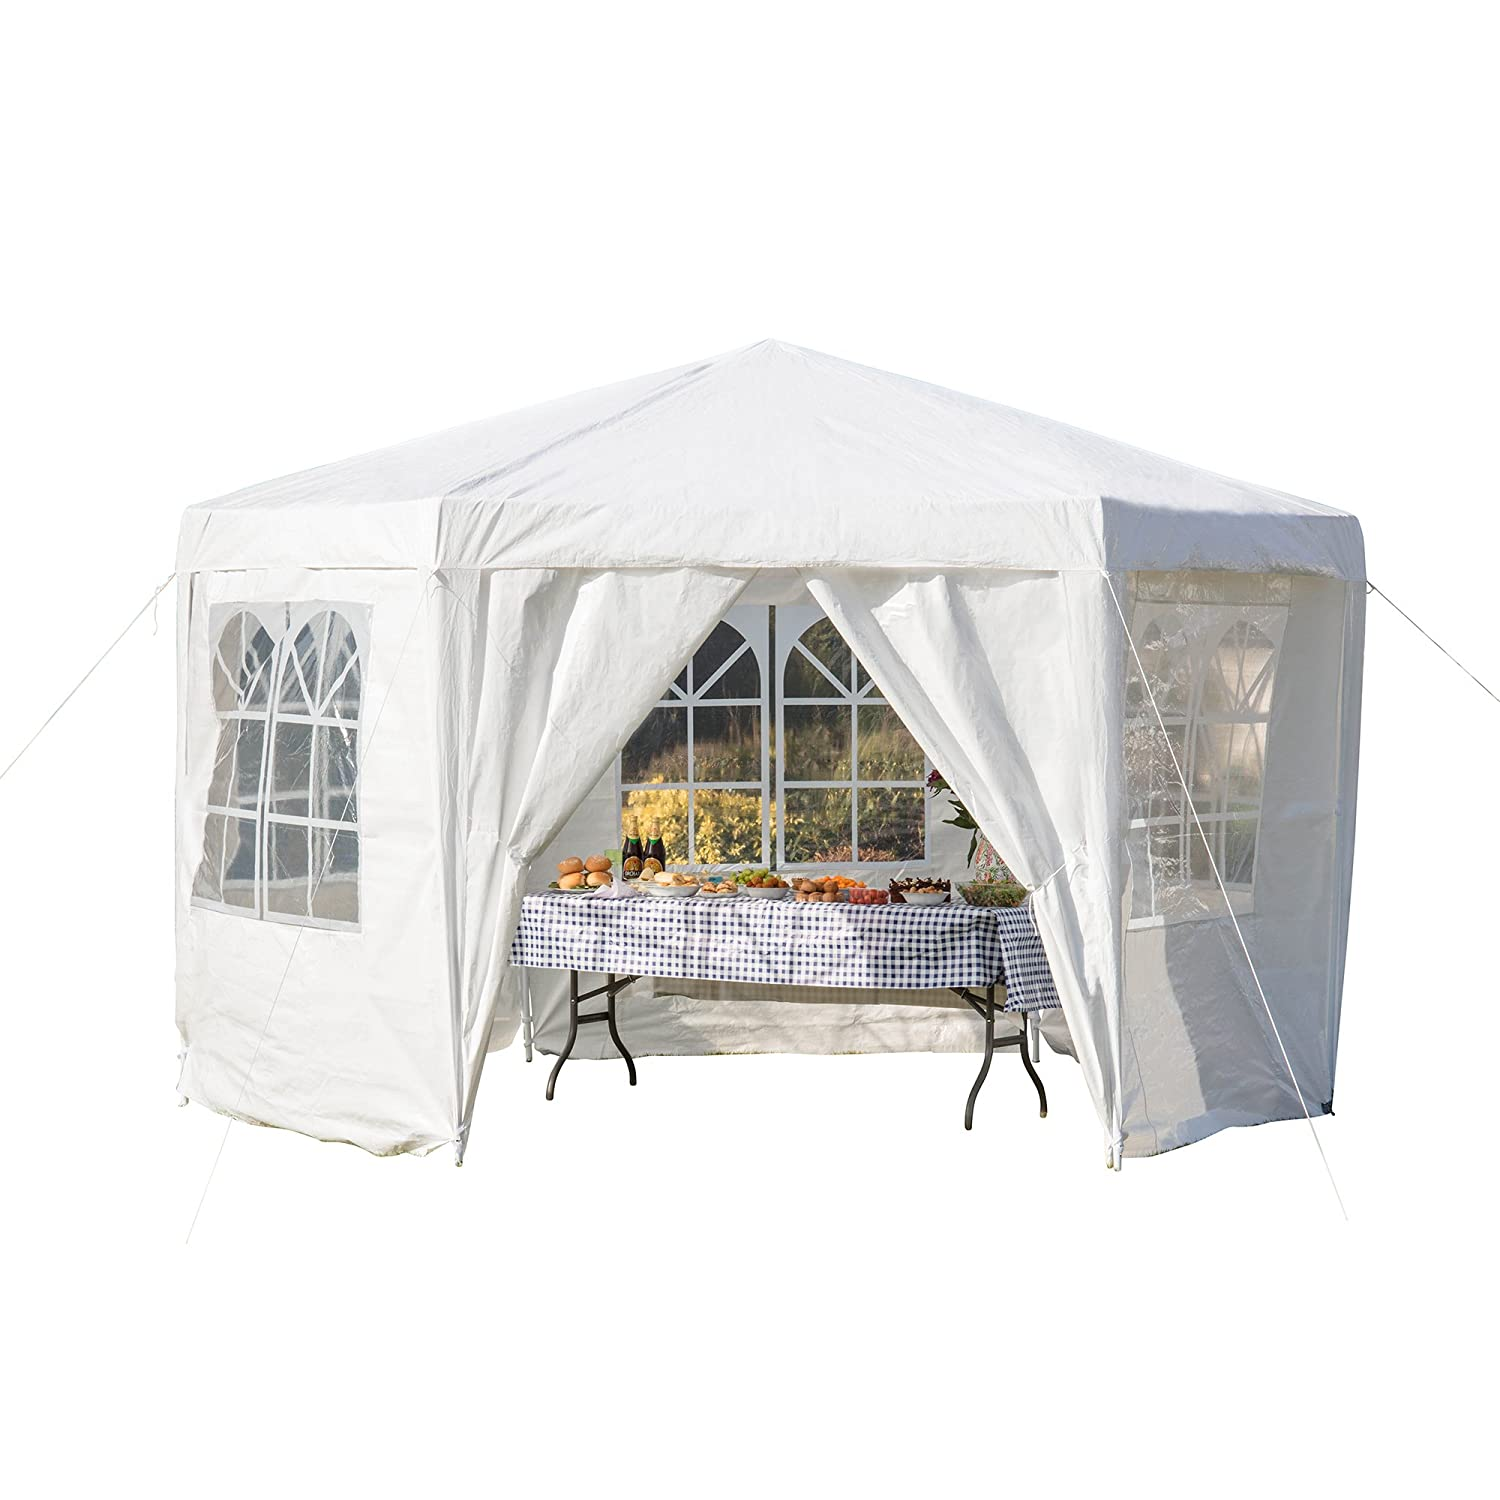 Garden Life Gazebo Hexagonal Party Tent Outdoor Events Shelter (Blue)